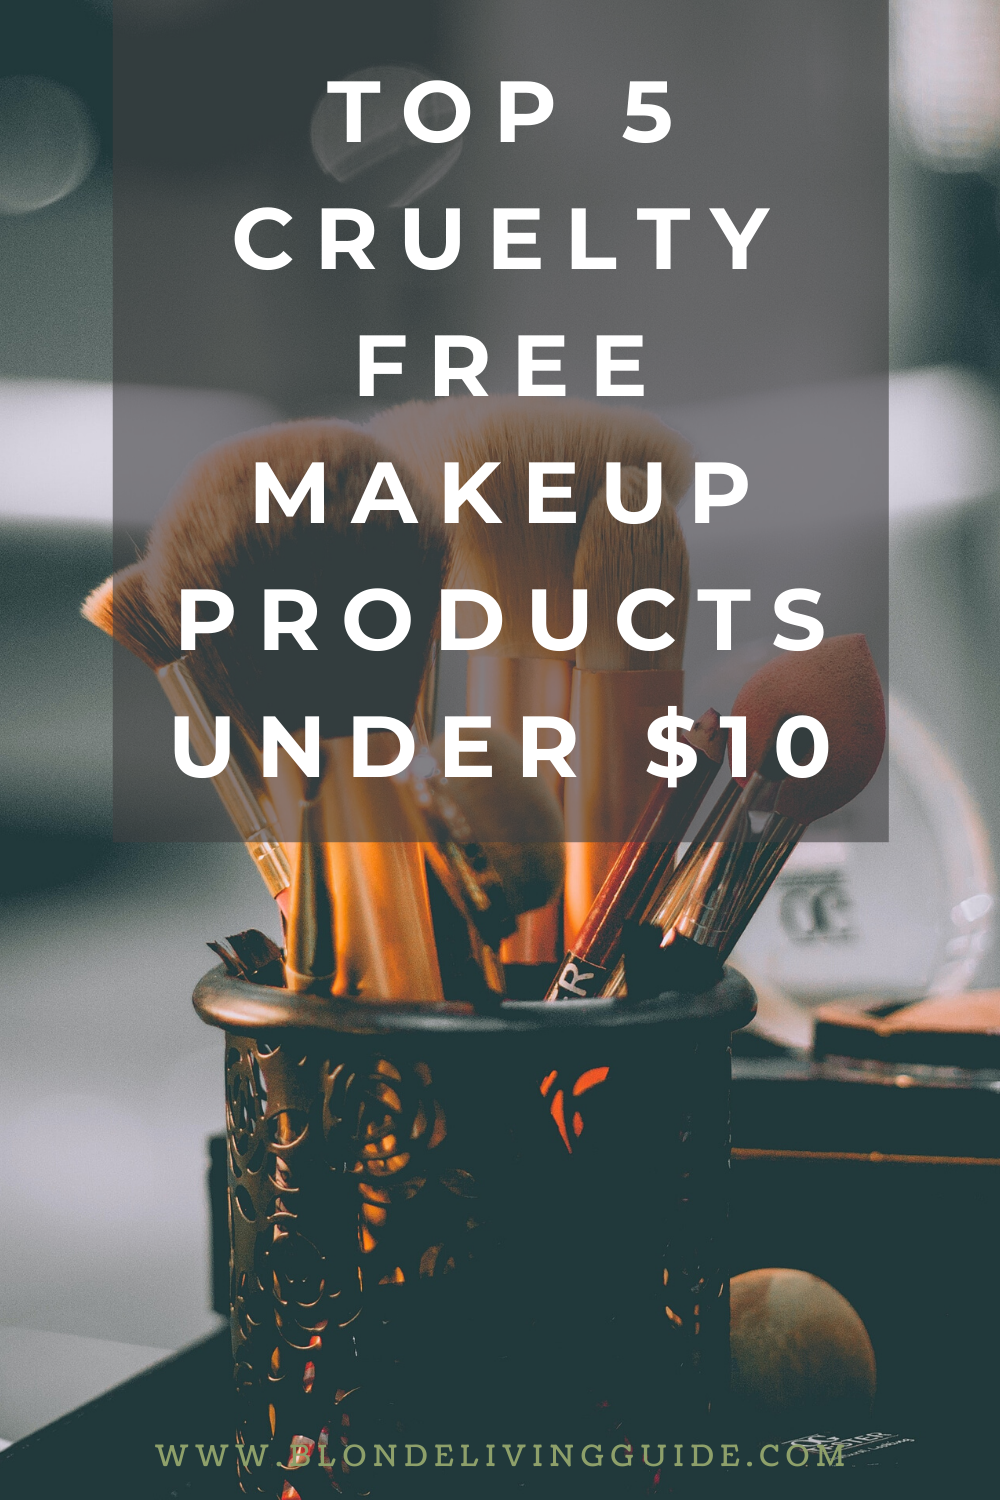 Top 5 Cruelty Free Makeup Products Under 10 in 2020